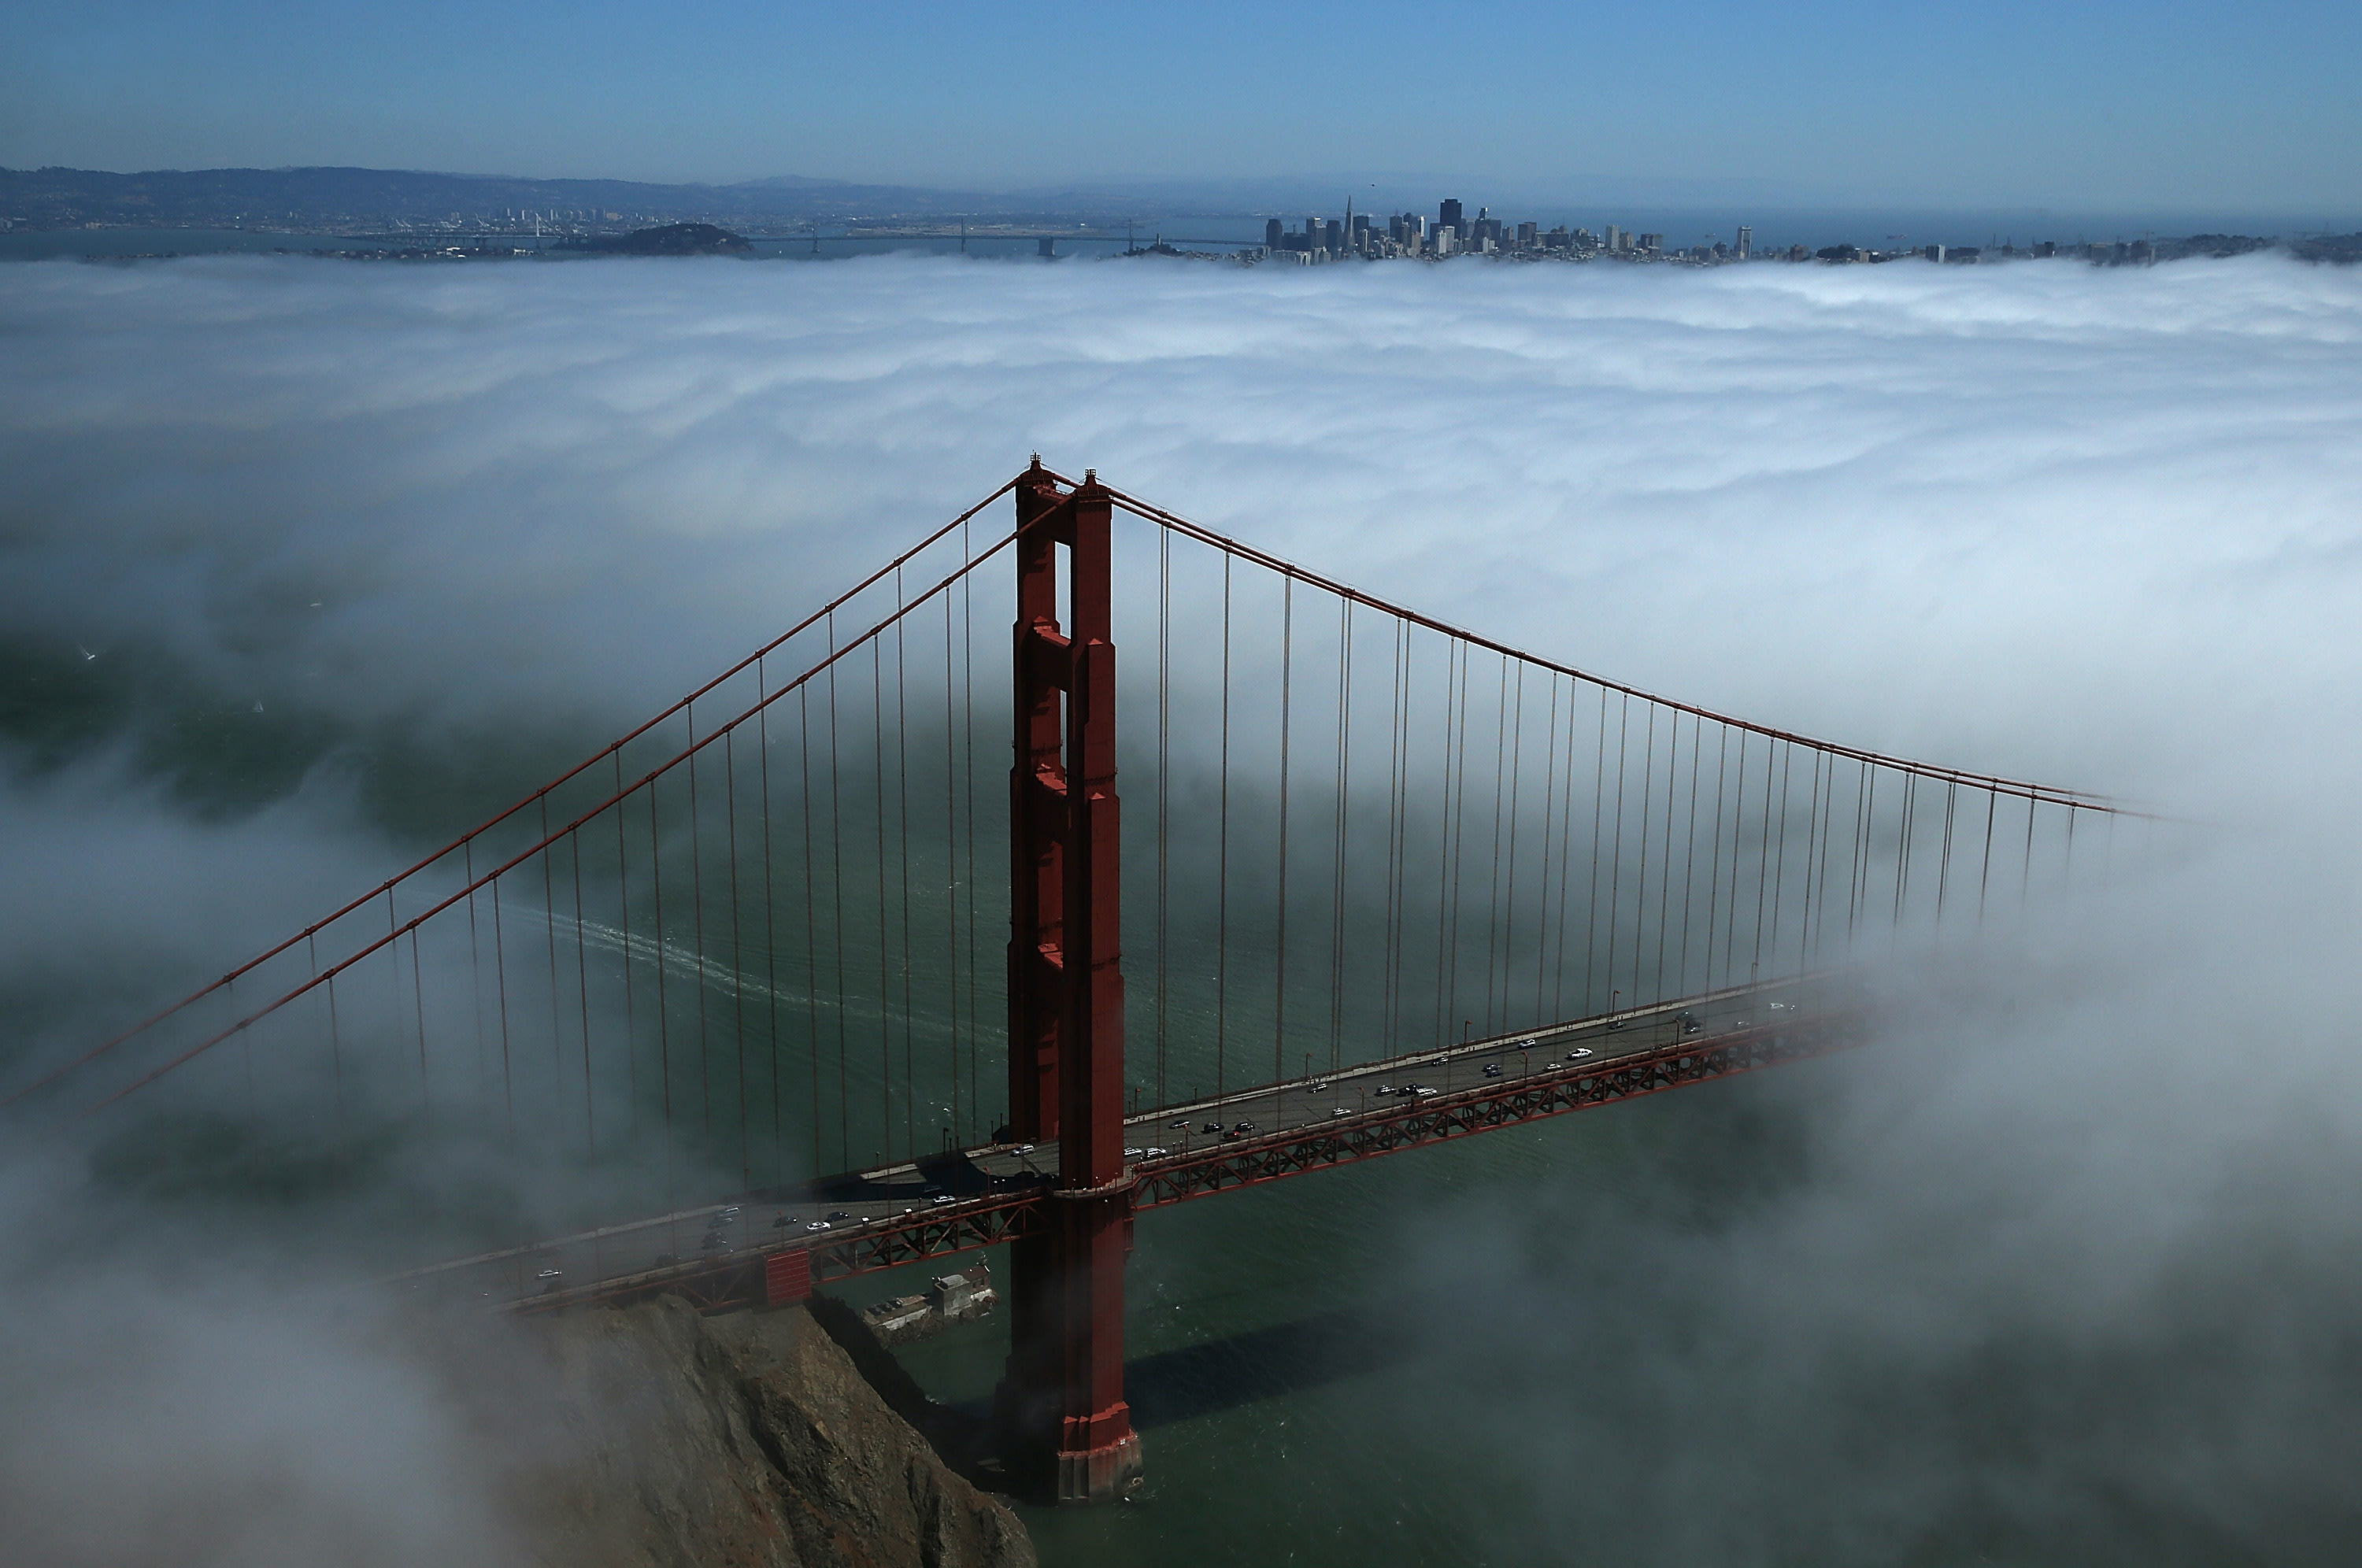 'One of the largest human experiments in history' was conducted on unsuspecting residents of San Francisco